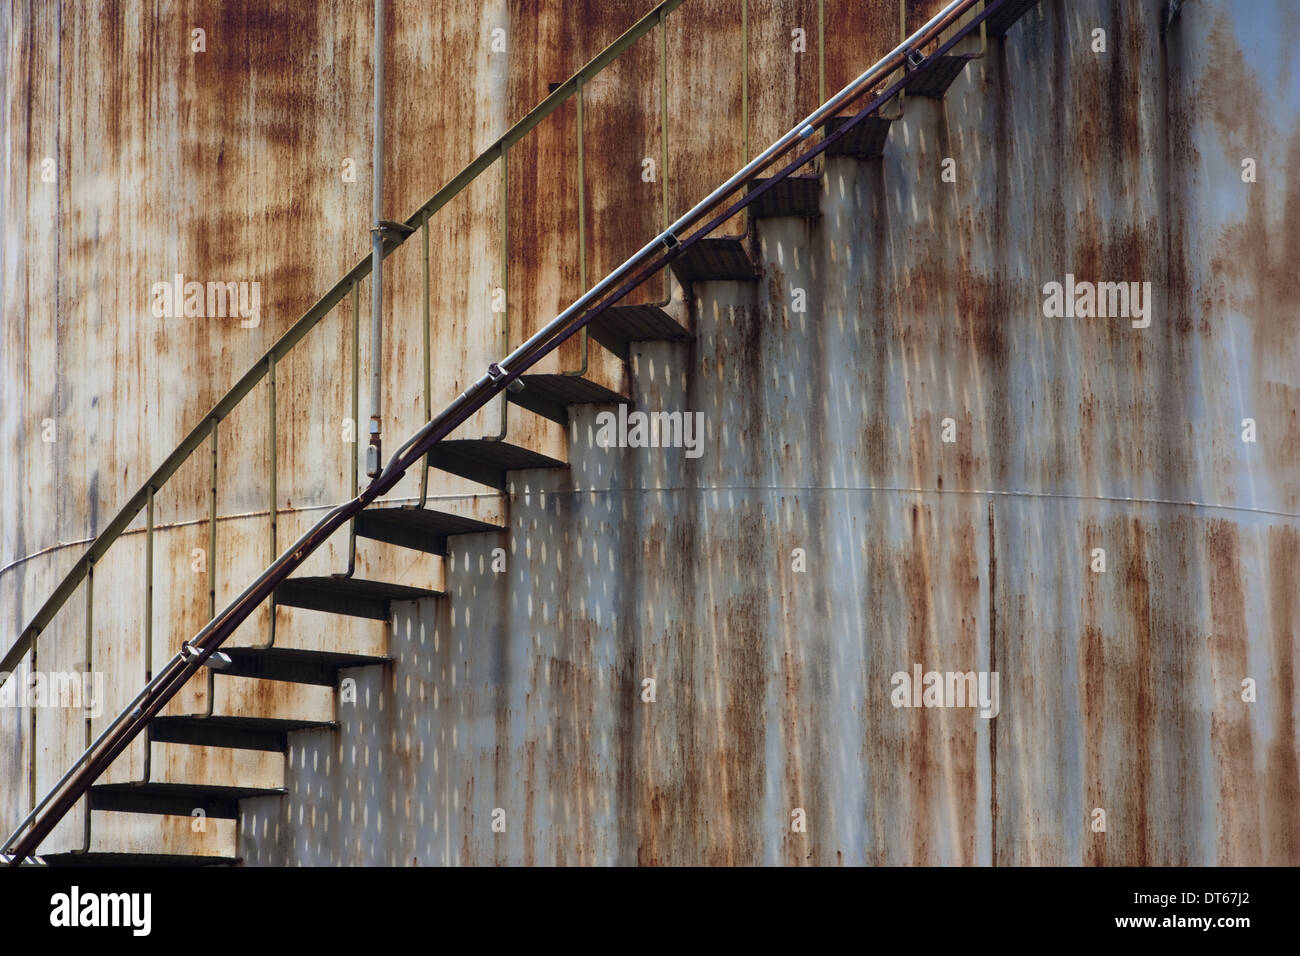 Staircase on a rusting iron structure, Puerto Rico - Stock Image